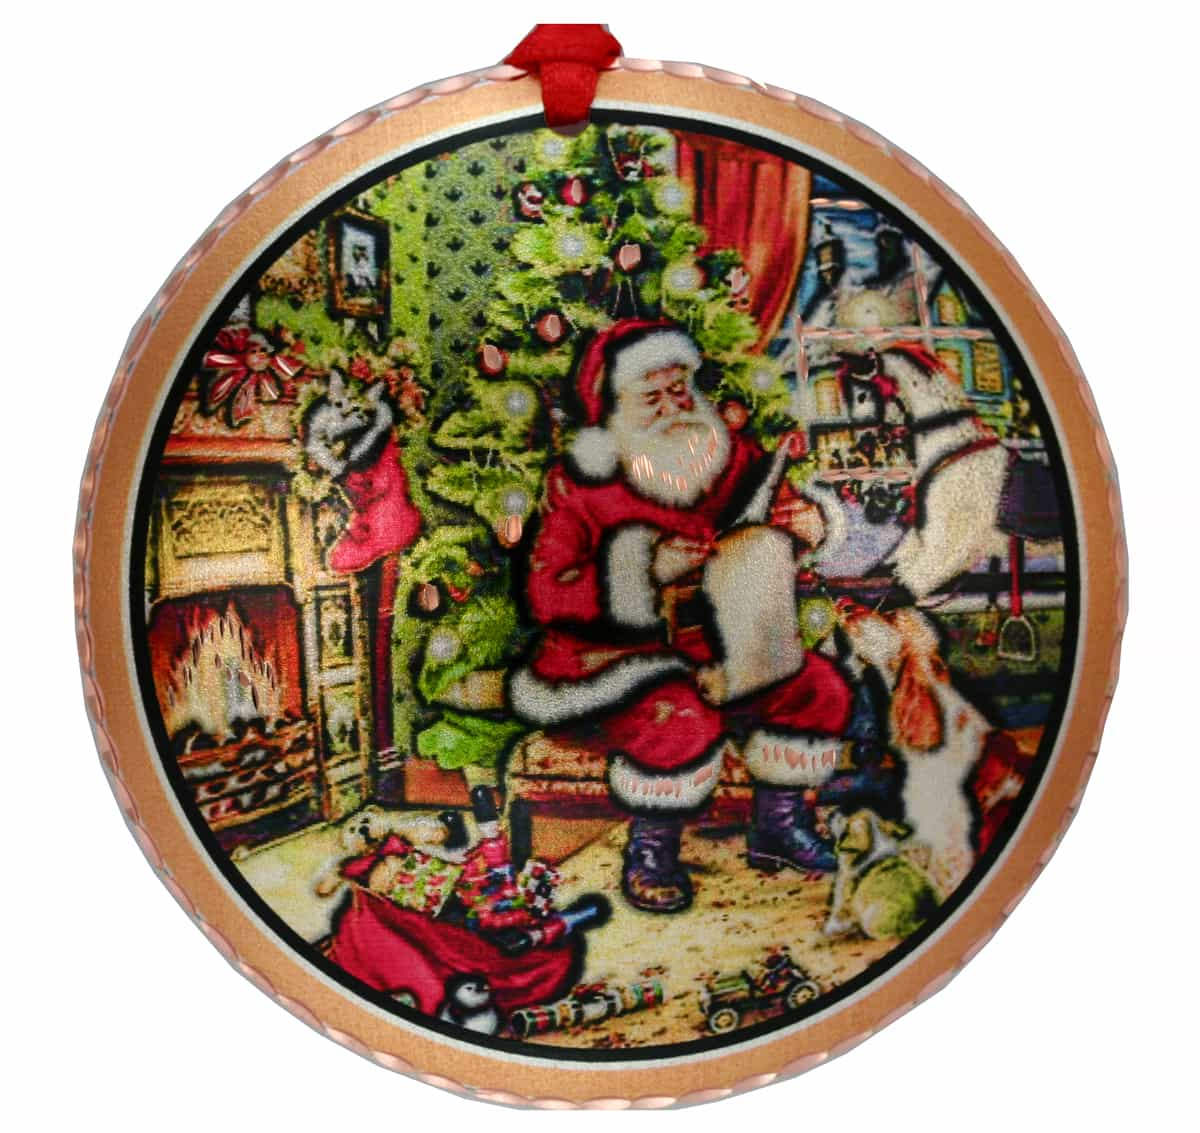 Santa by Christmas Tree Ornaments Handcrafted Copper Christmas Tree Ornament Created in Colorful Artwork